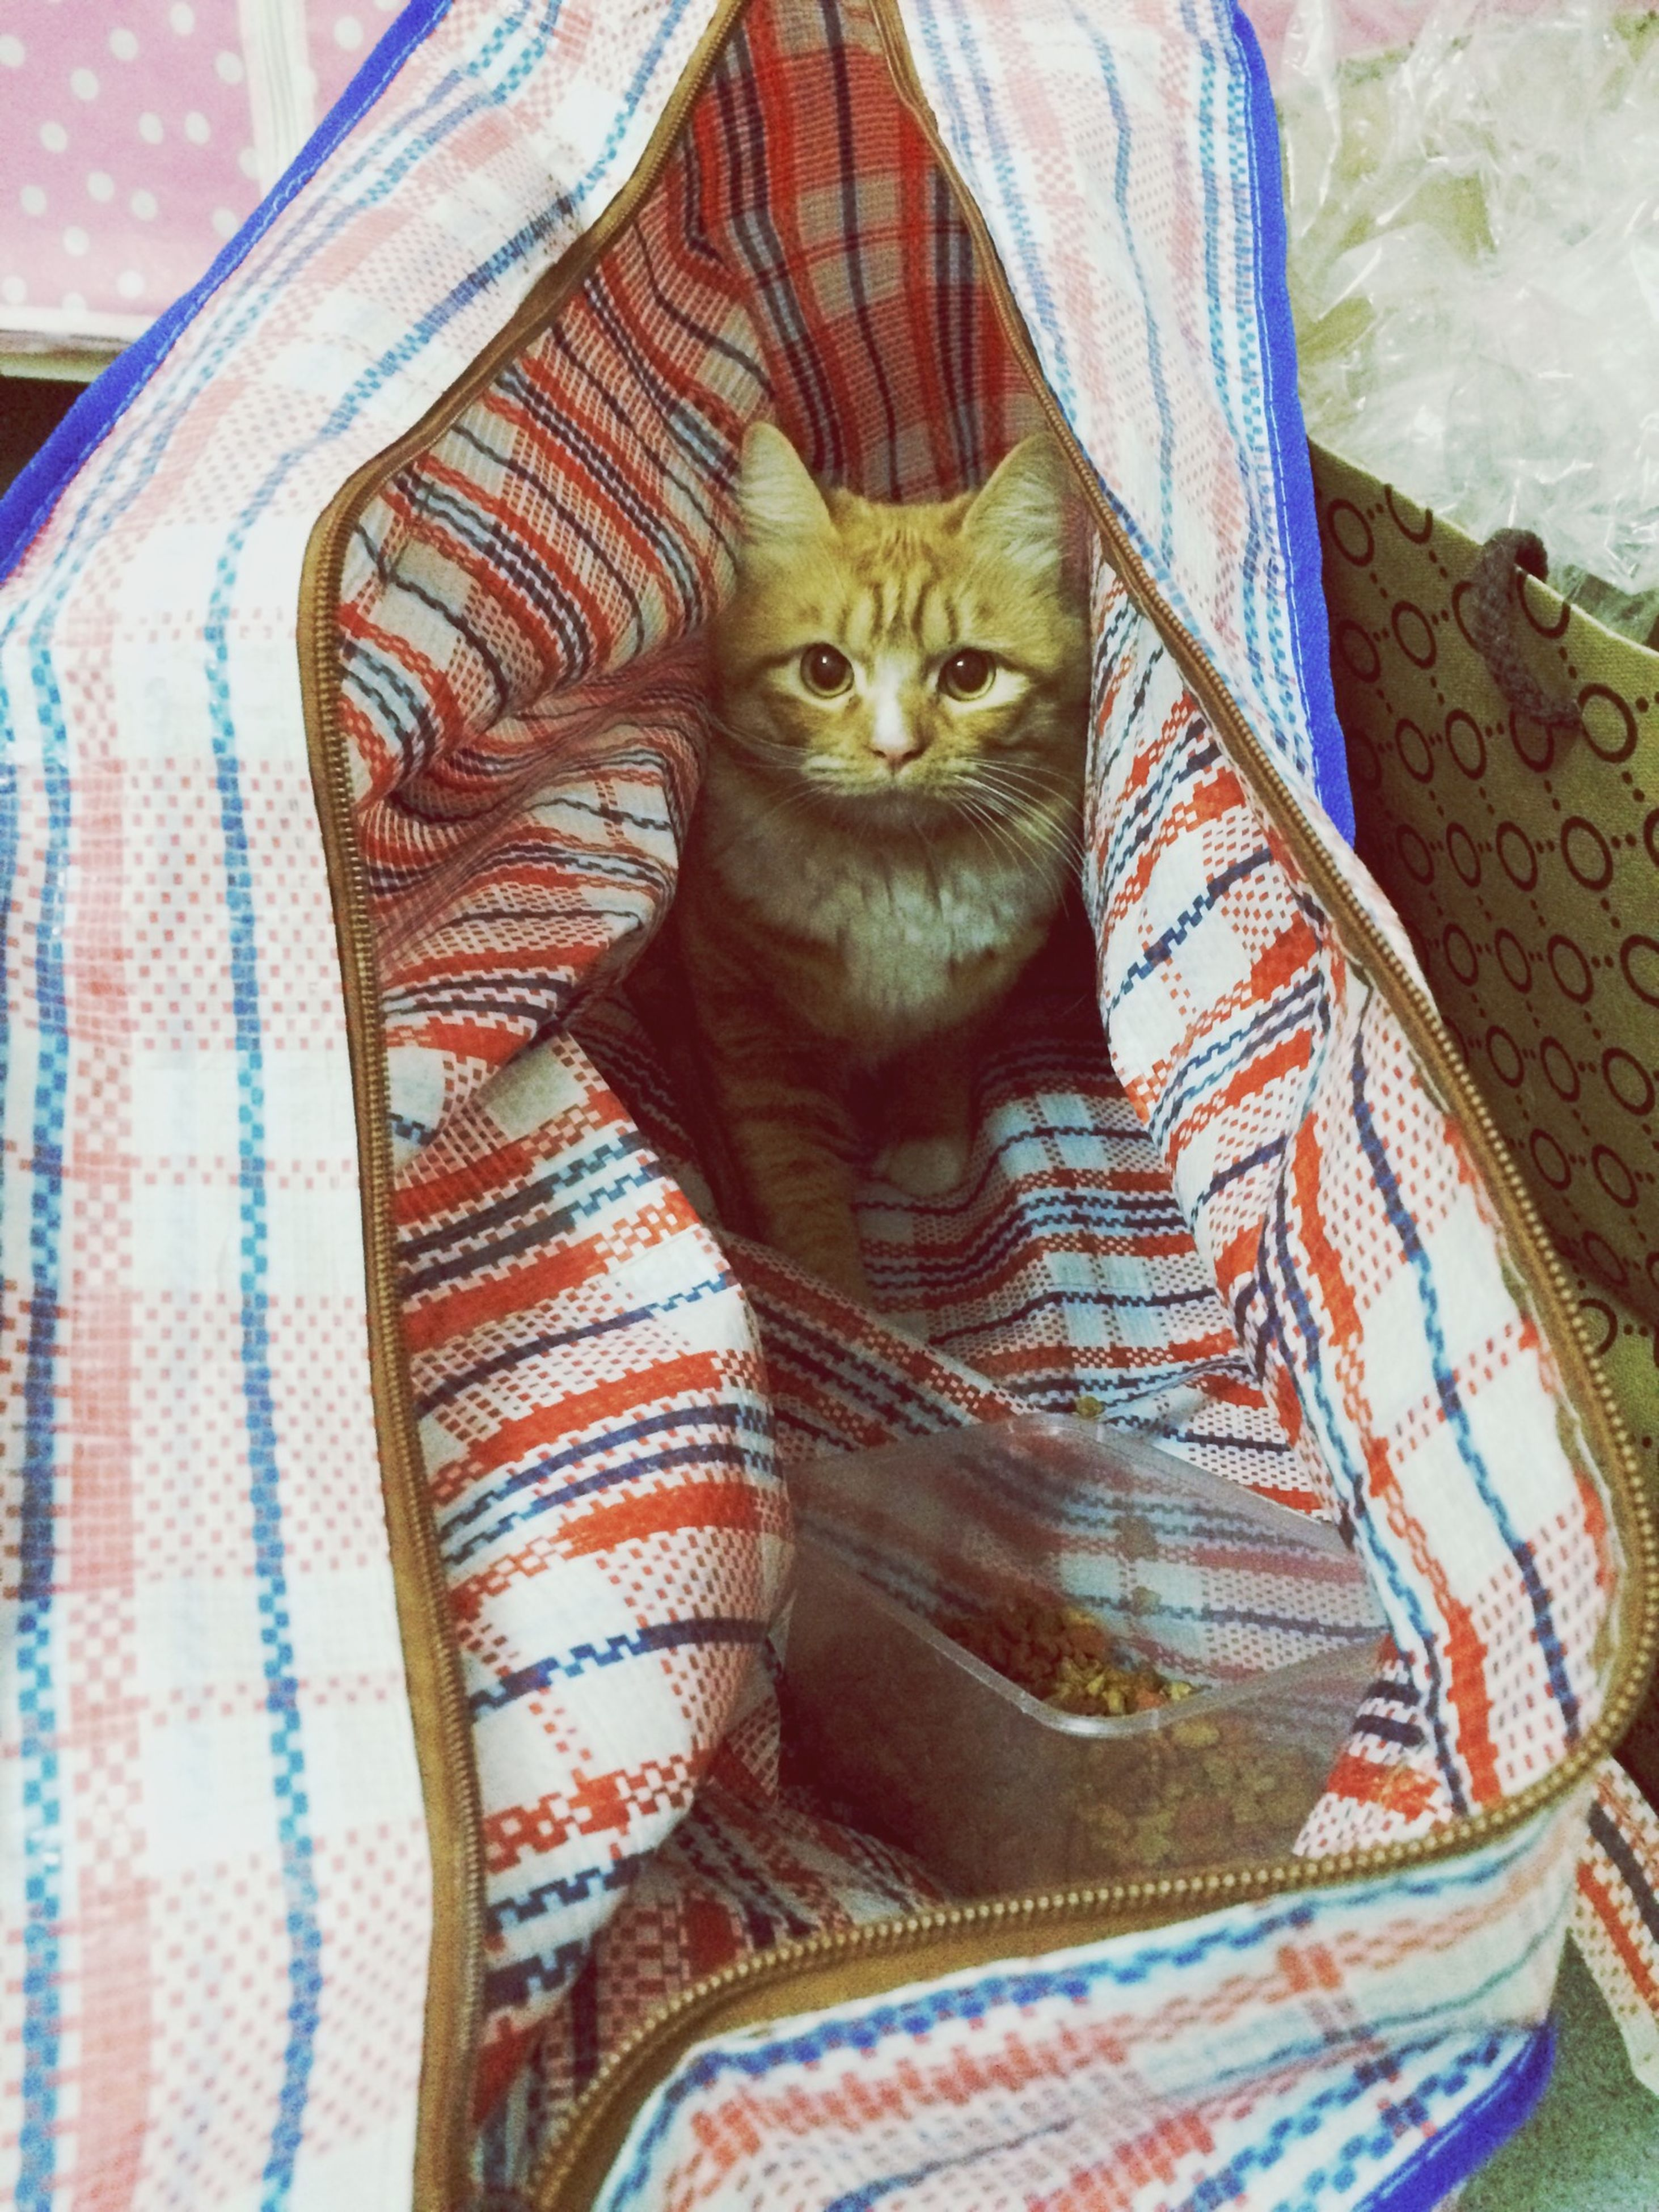 indoors, domestic cat, one animal, animal themes, domestic animals, bed, cat, pets, feline, relaxation, mammal, portrait, textile, fabric, blanket, looking at camera, sheet, resting, whisker, close-up